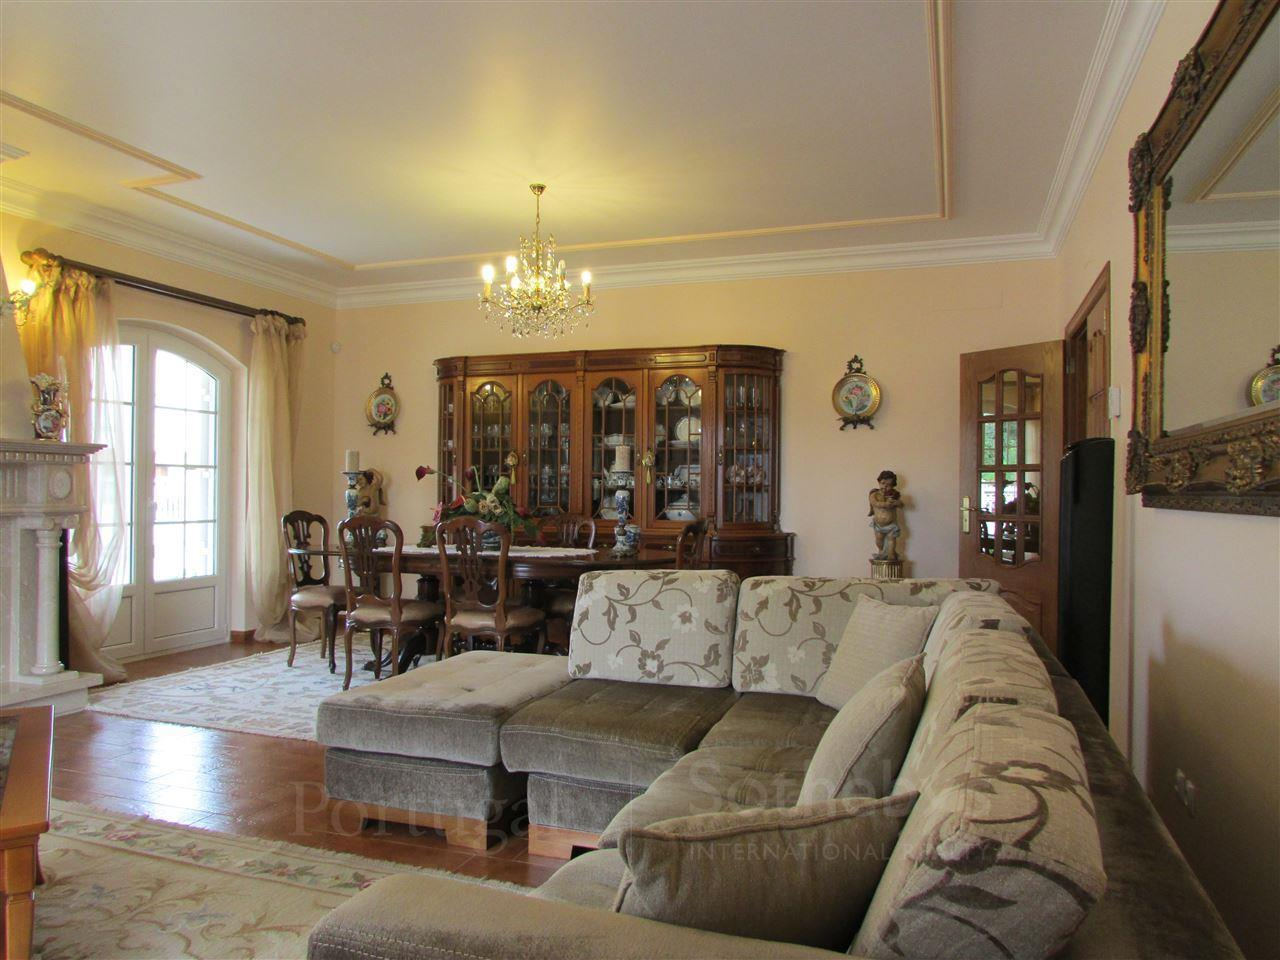 Property For Sale at Detached house, 4 bedrooms, for Sale